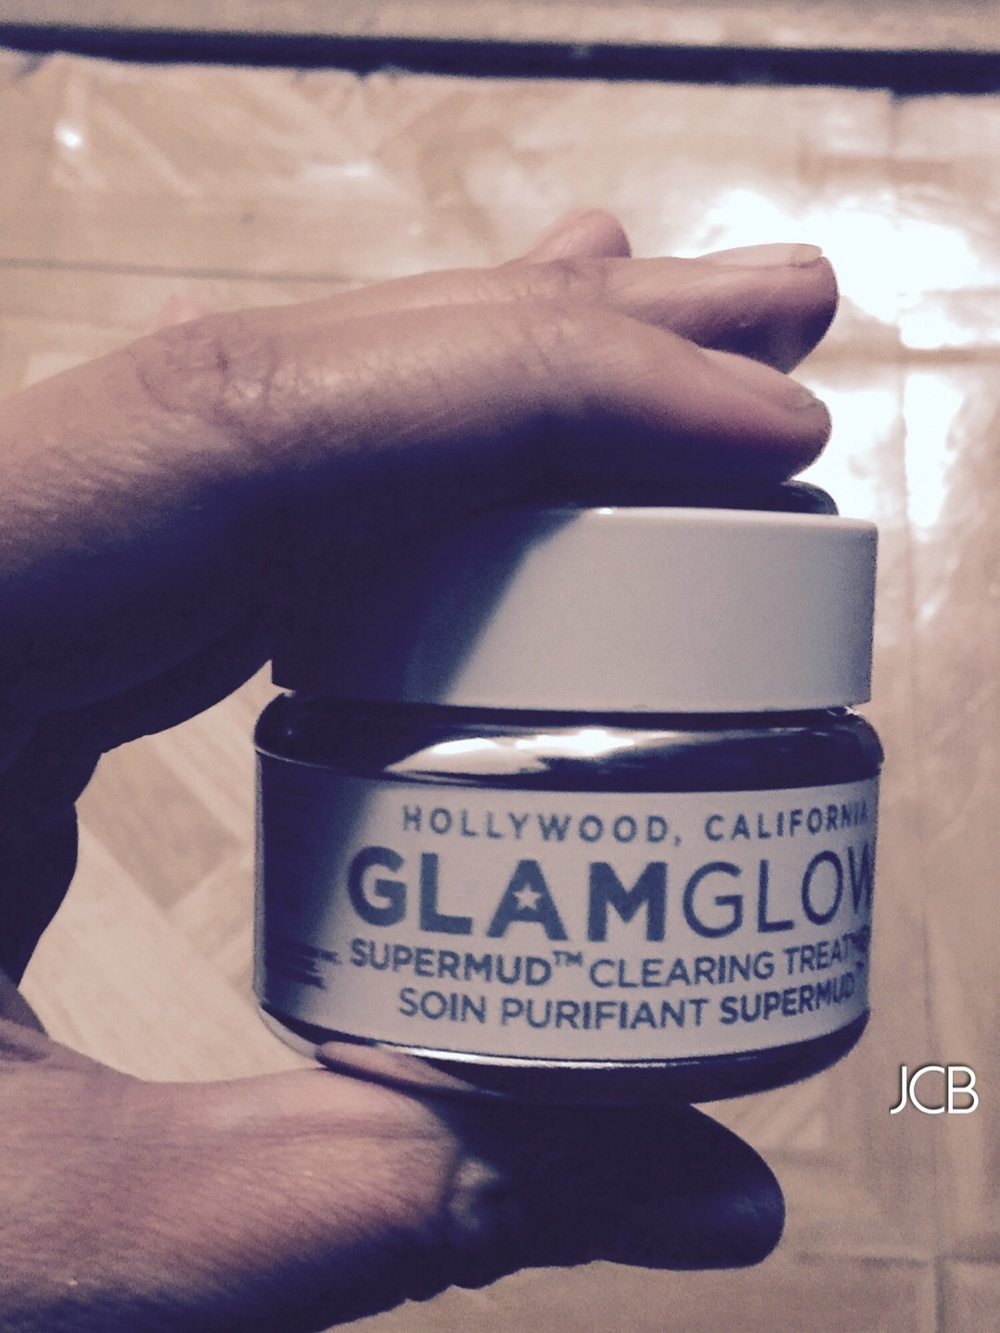 GlamGlow SuperMud Clearing Treatment is$69.00 usd